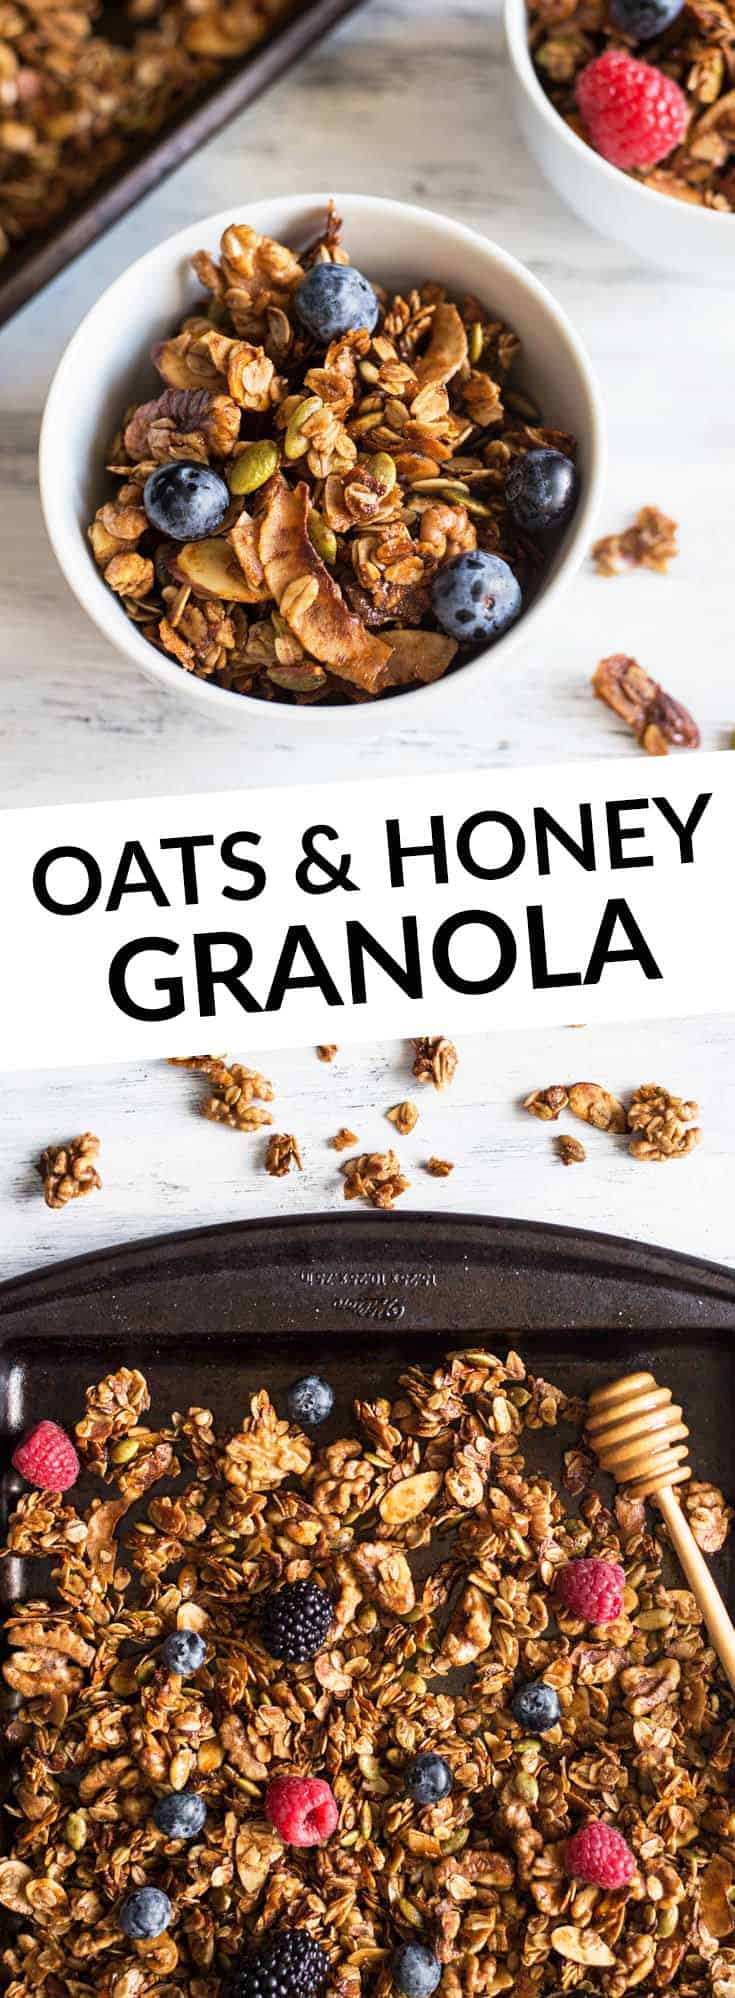 Easy Healthy Granola Recipe with Oats and Honey - gluten free